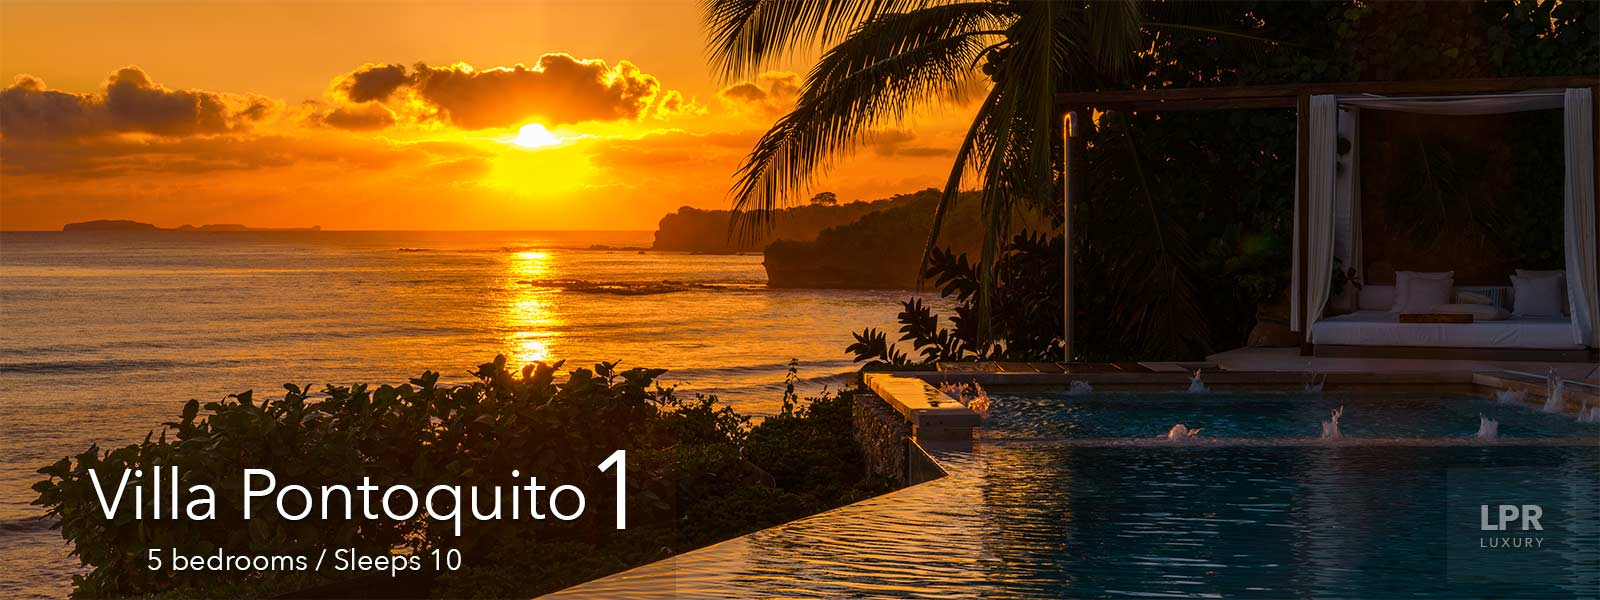 Villa Pontoquito 1 - Luxury Real Estate and Vacation Rentals - Punta de Mita, Mexico